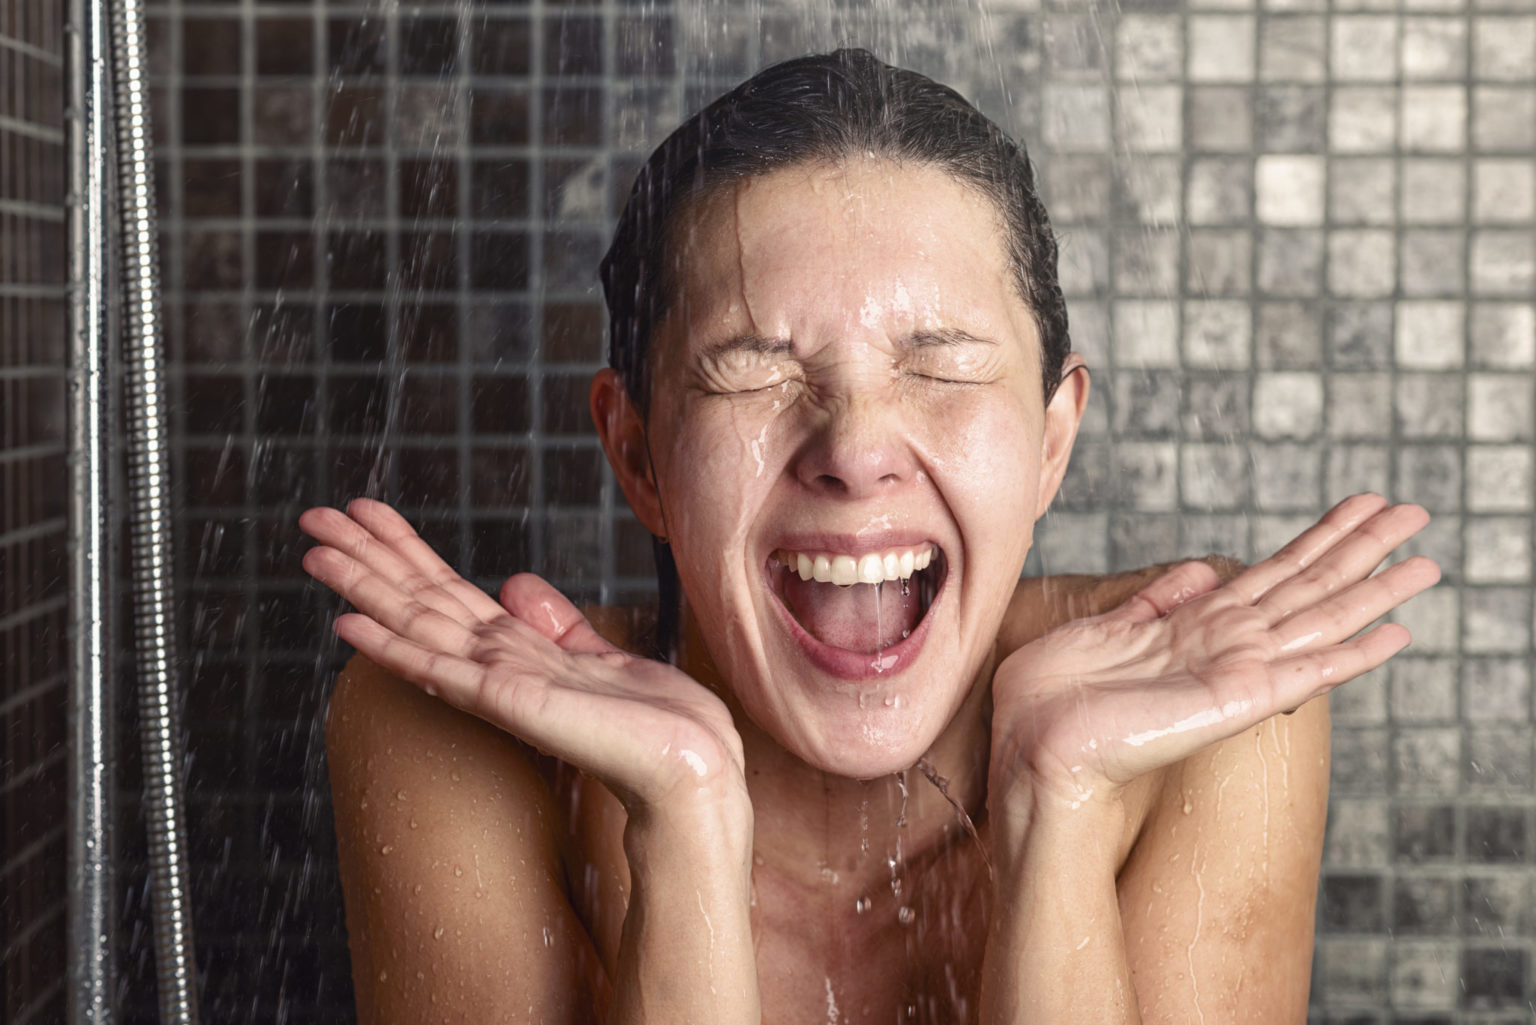 Young woman reacting in shock to hot or cold shower water as she stands under the shower head washing her hair eyes closed with her hands raised and mouth open